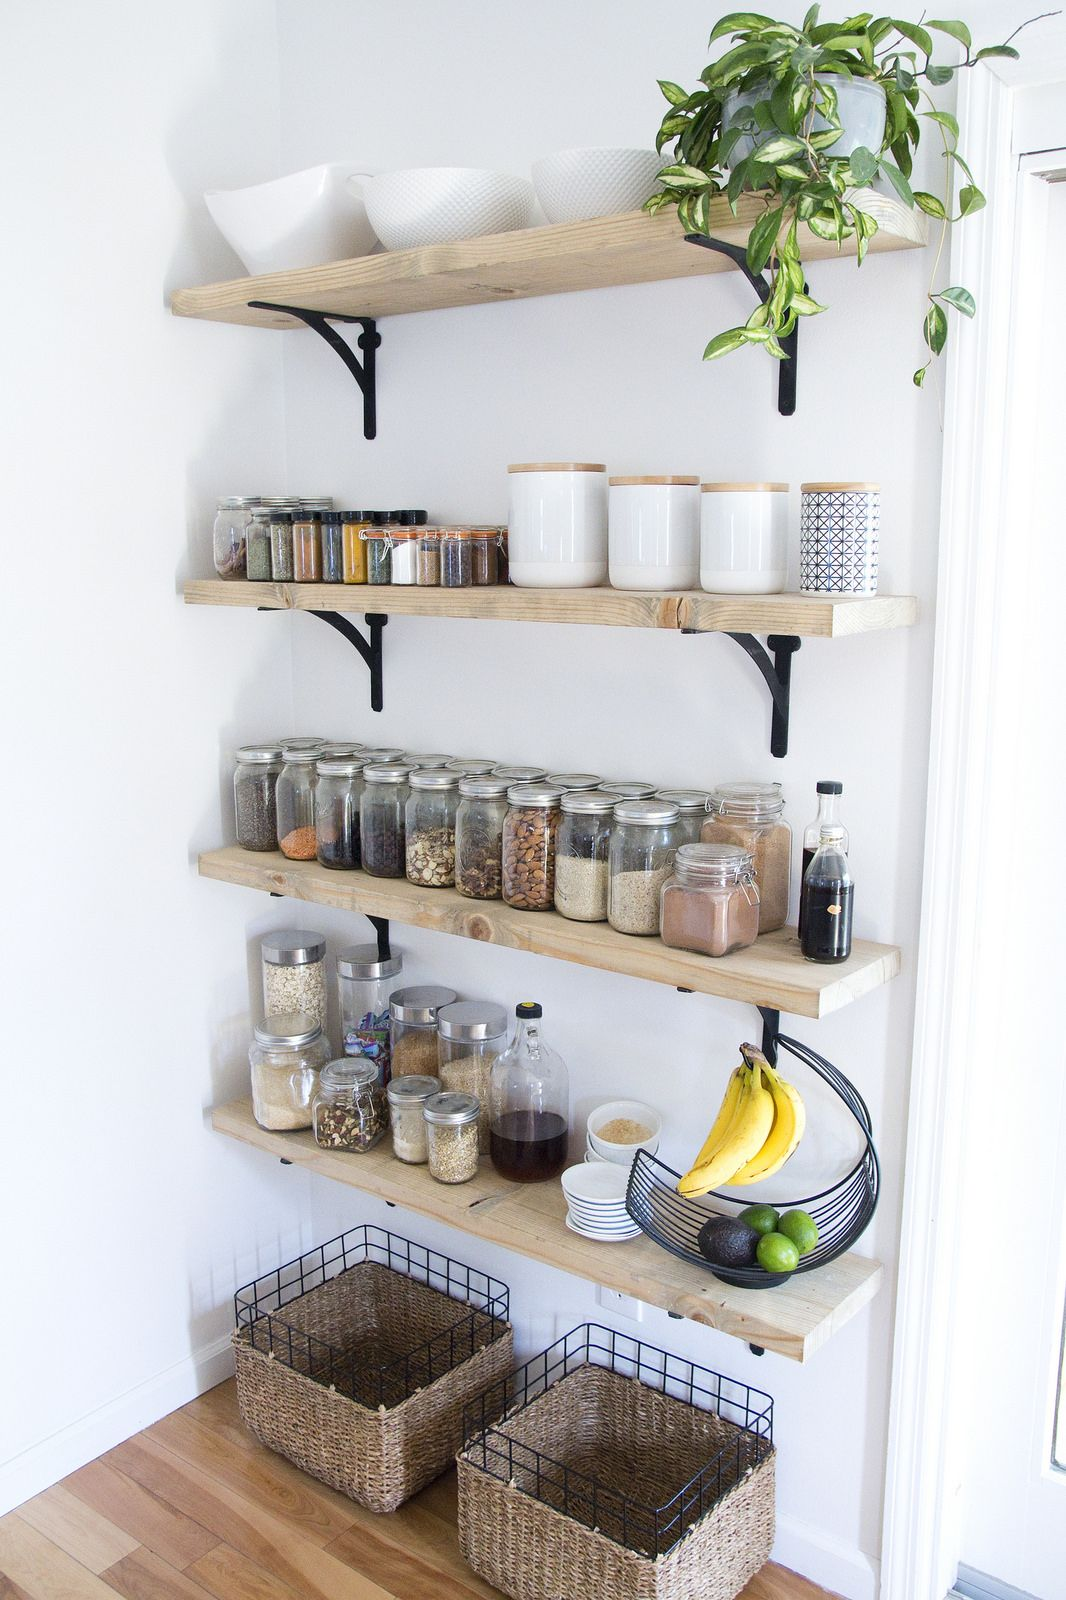 8 tips for creating successful open shelving and a pantry via jenloveskev